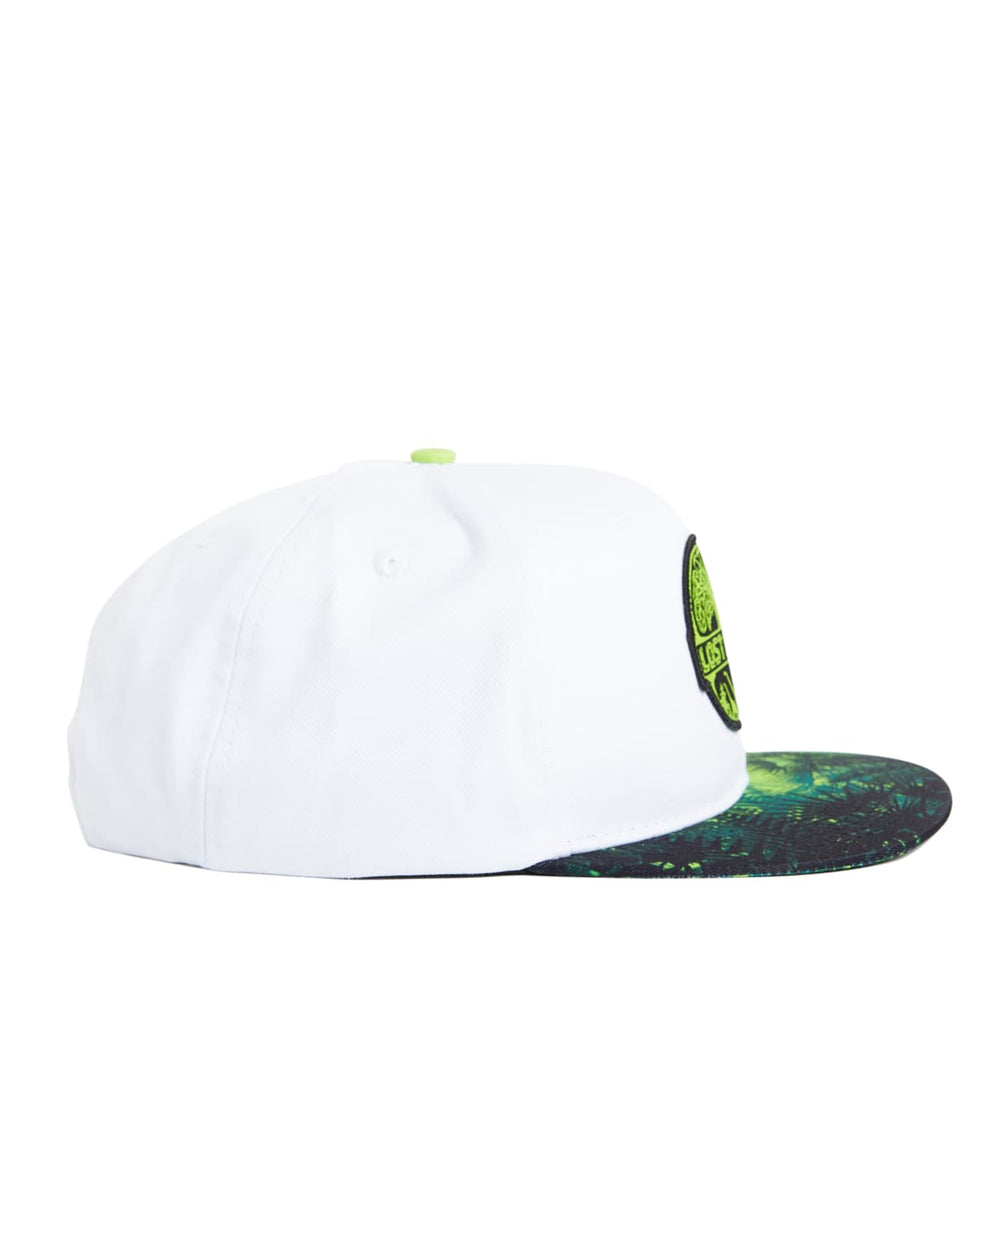 Lost Lands 'Tree of Life' Snapback (White/Green)